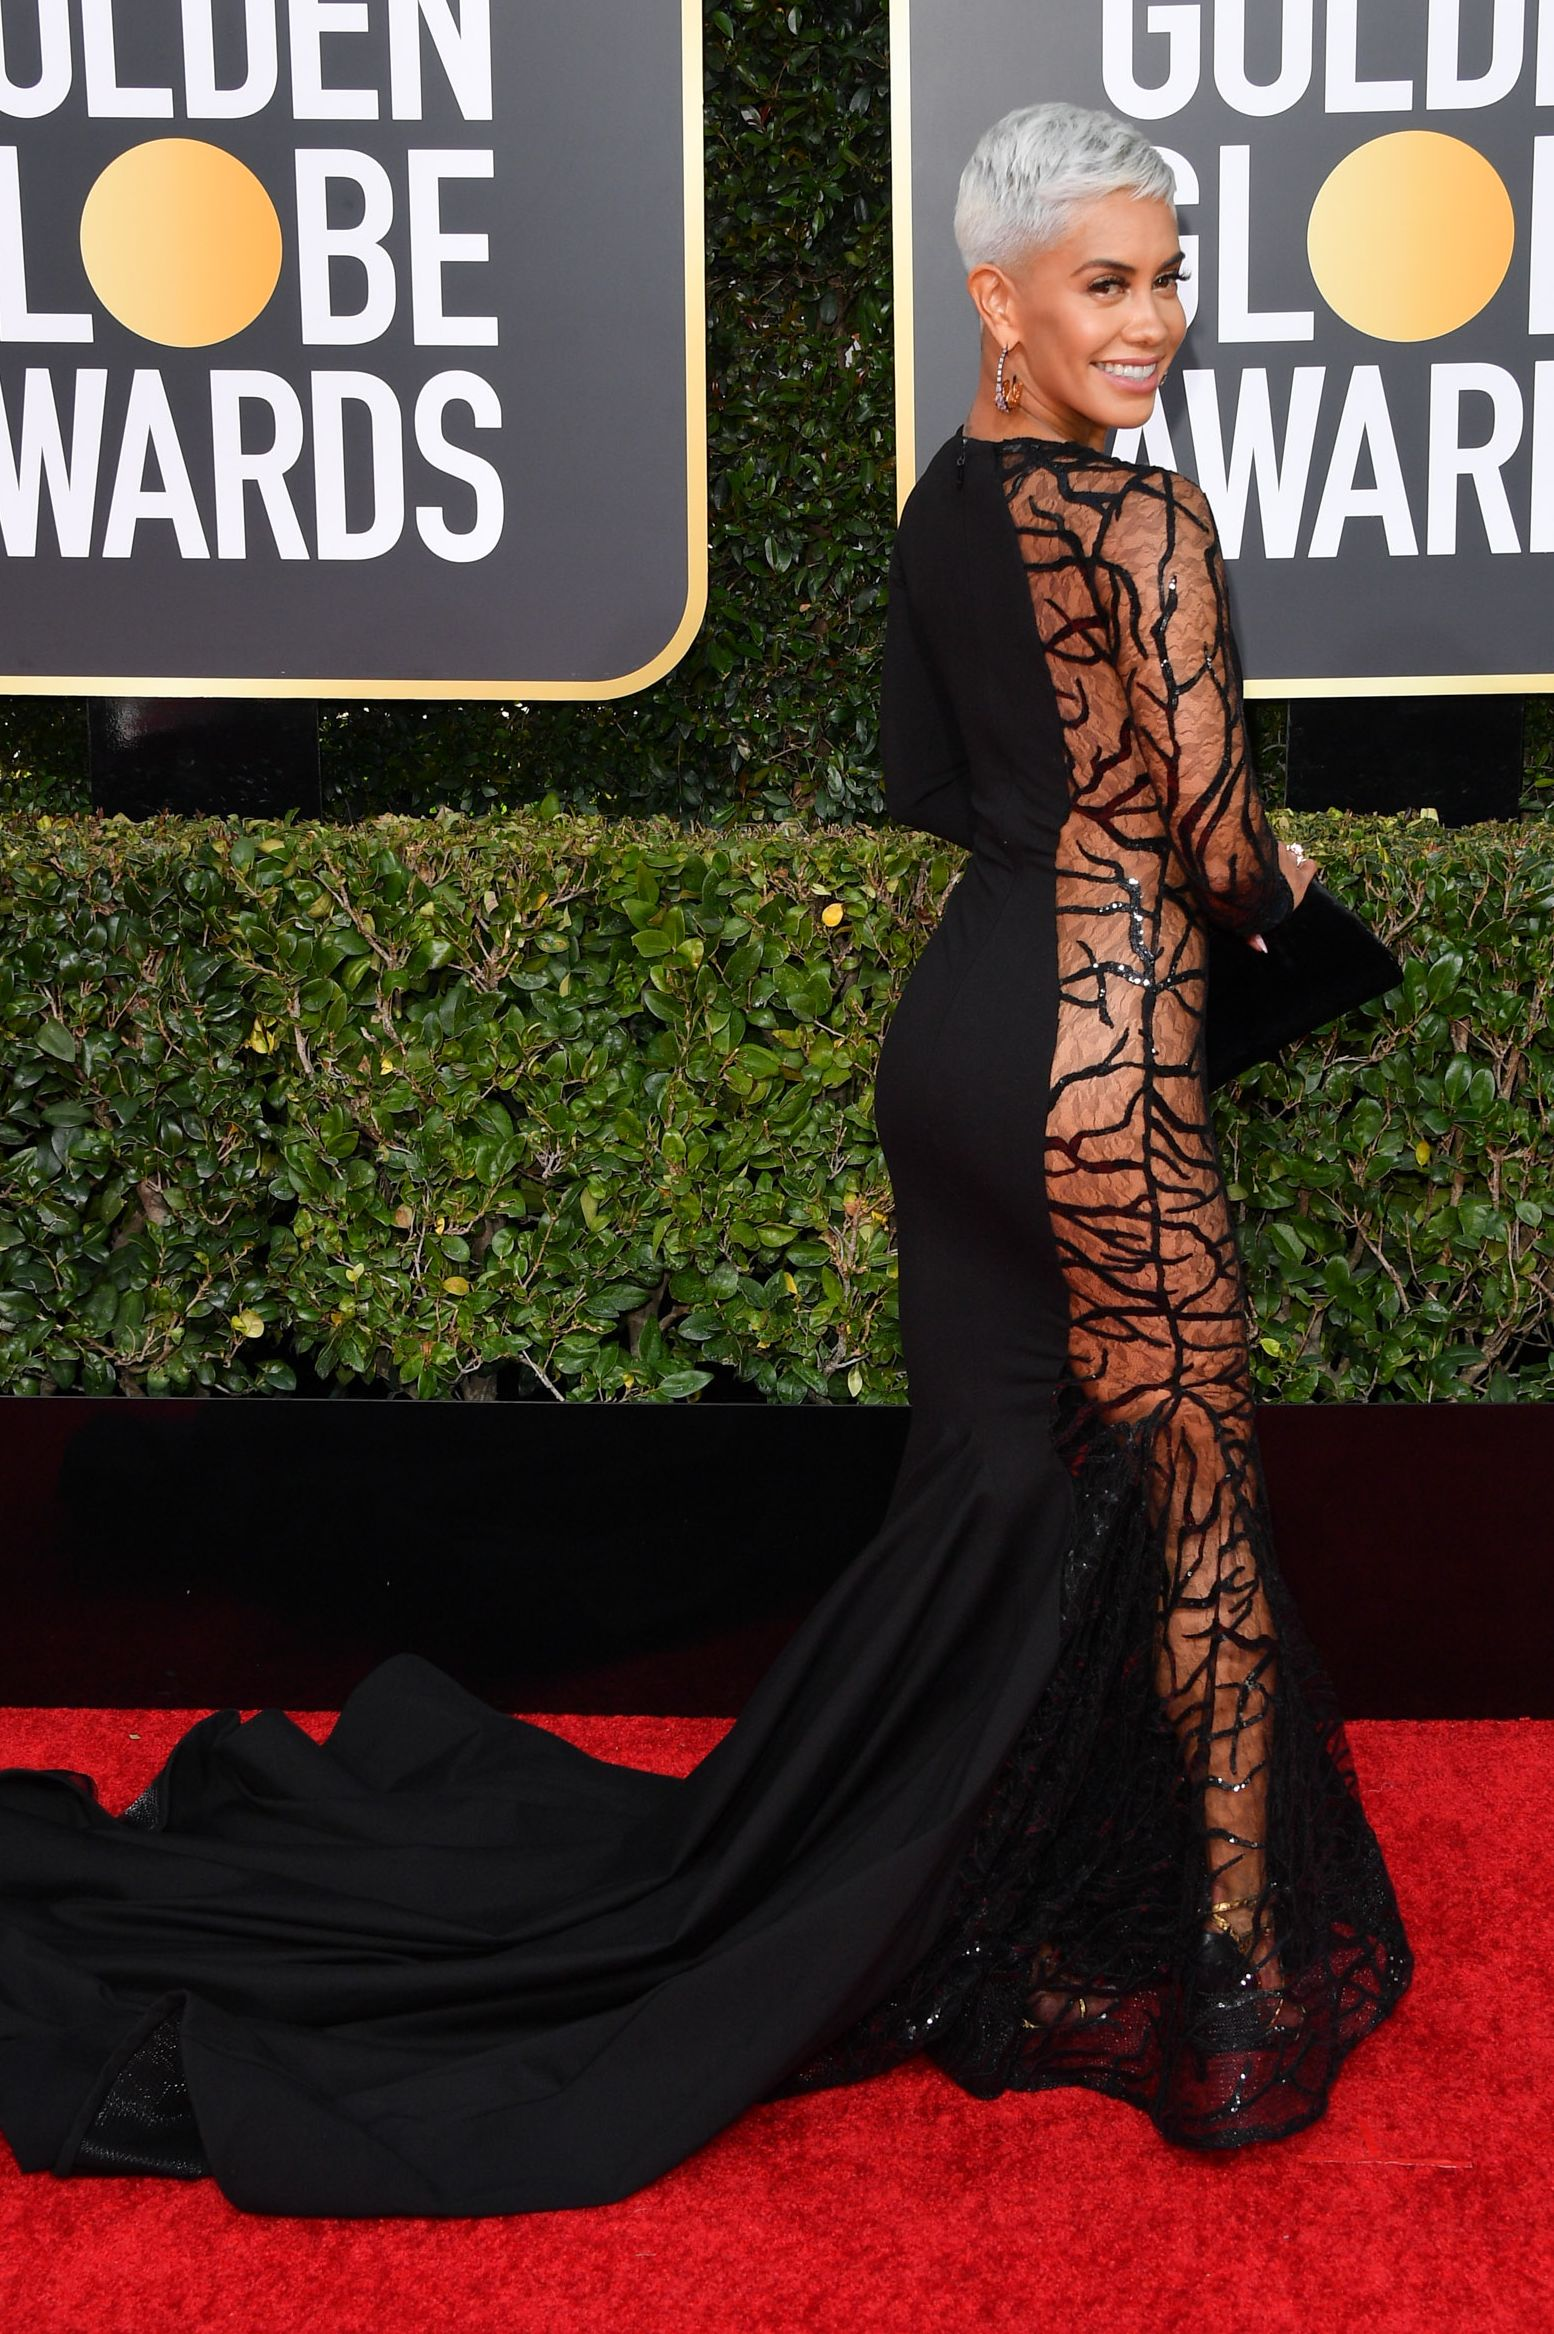 Sibley Scoles Scoles turned to the side for the cameras at the Golden Globes so she could show off that see-through vine design. The mermaid-style gown was one of the more daring options for the night.